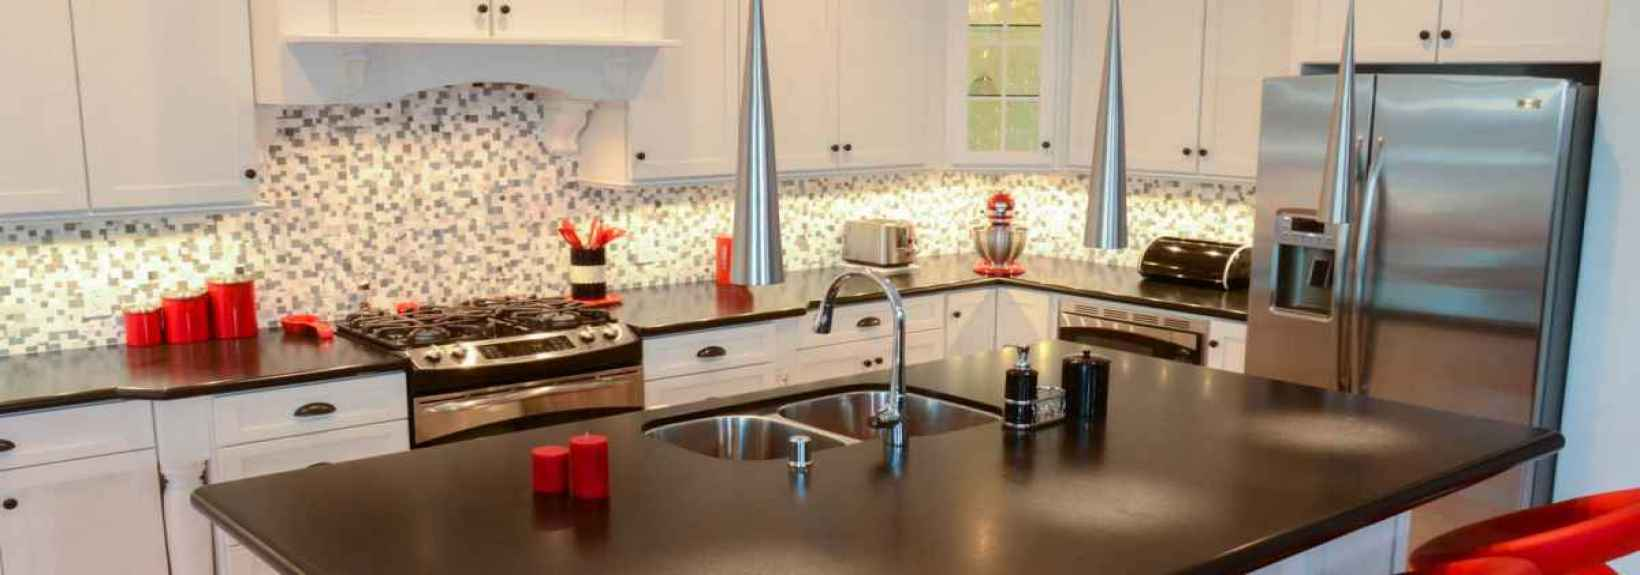 kitchen remodeling san diego kitchen remodel san diego In addition to the careful planning of space light and color to make small spaces feel larger and large spaces feel cozy MHS Works collaborates with you